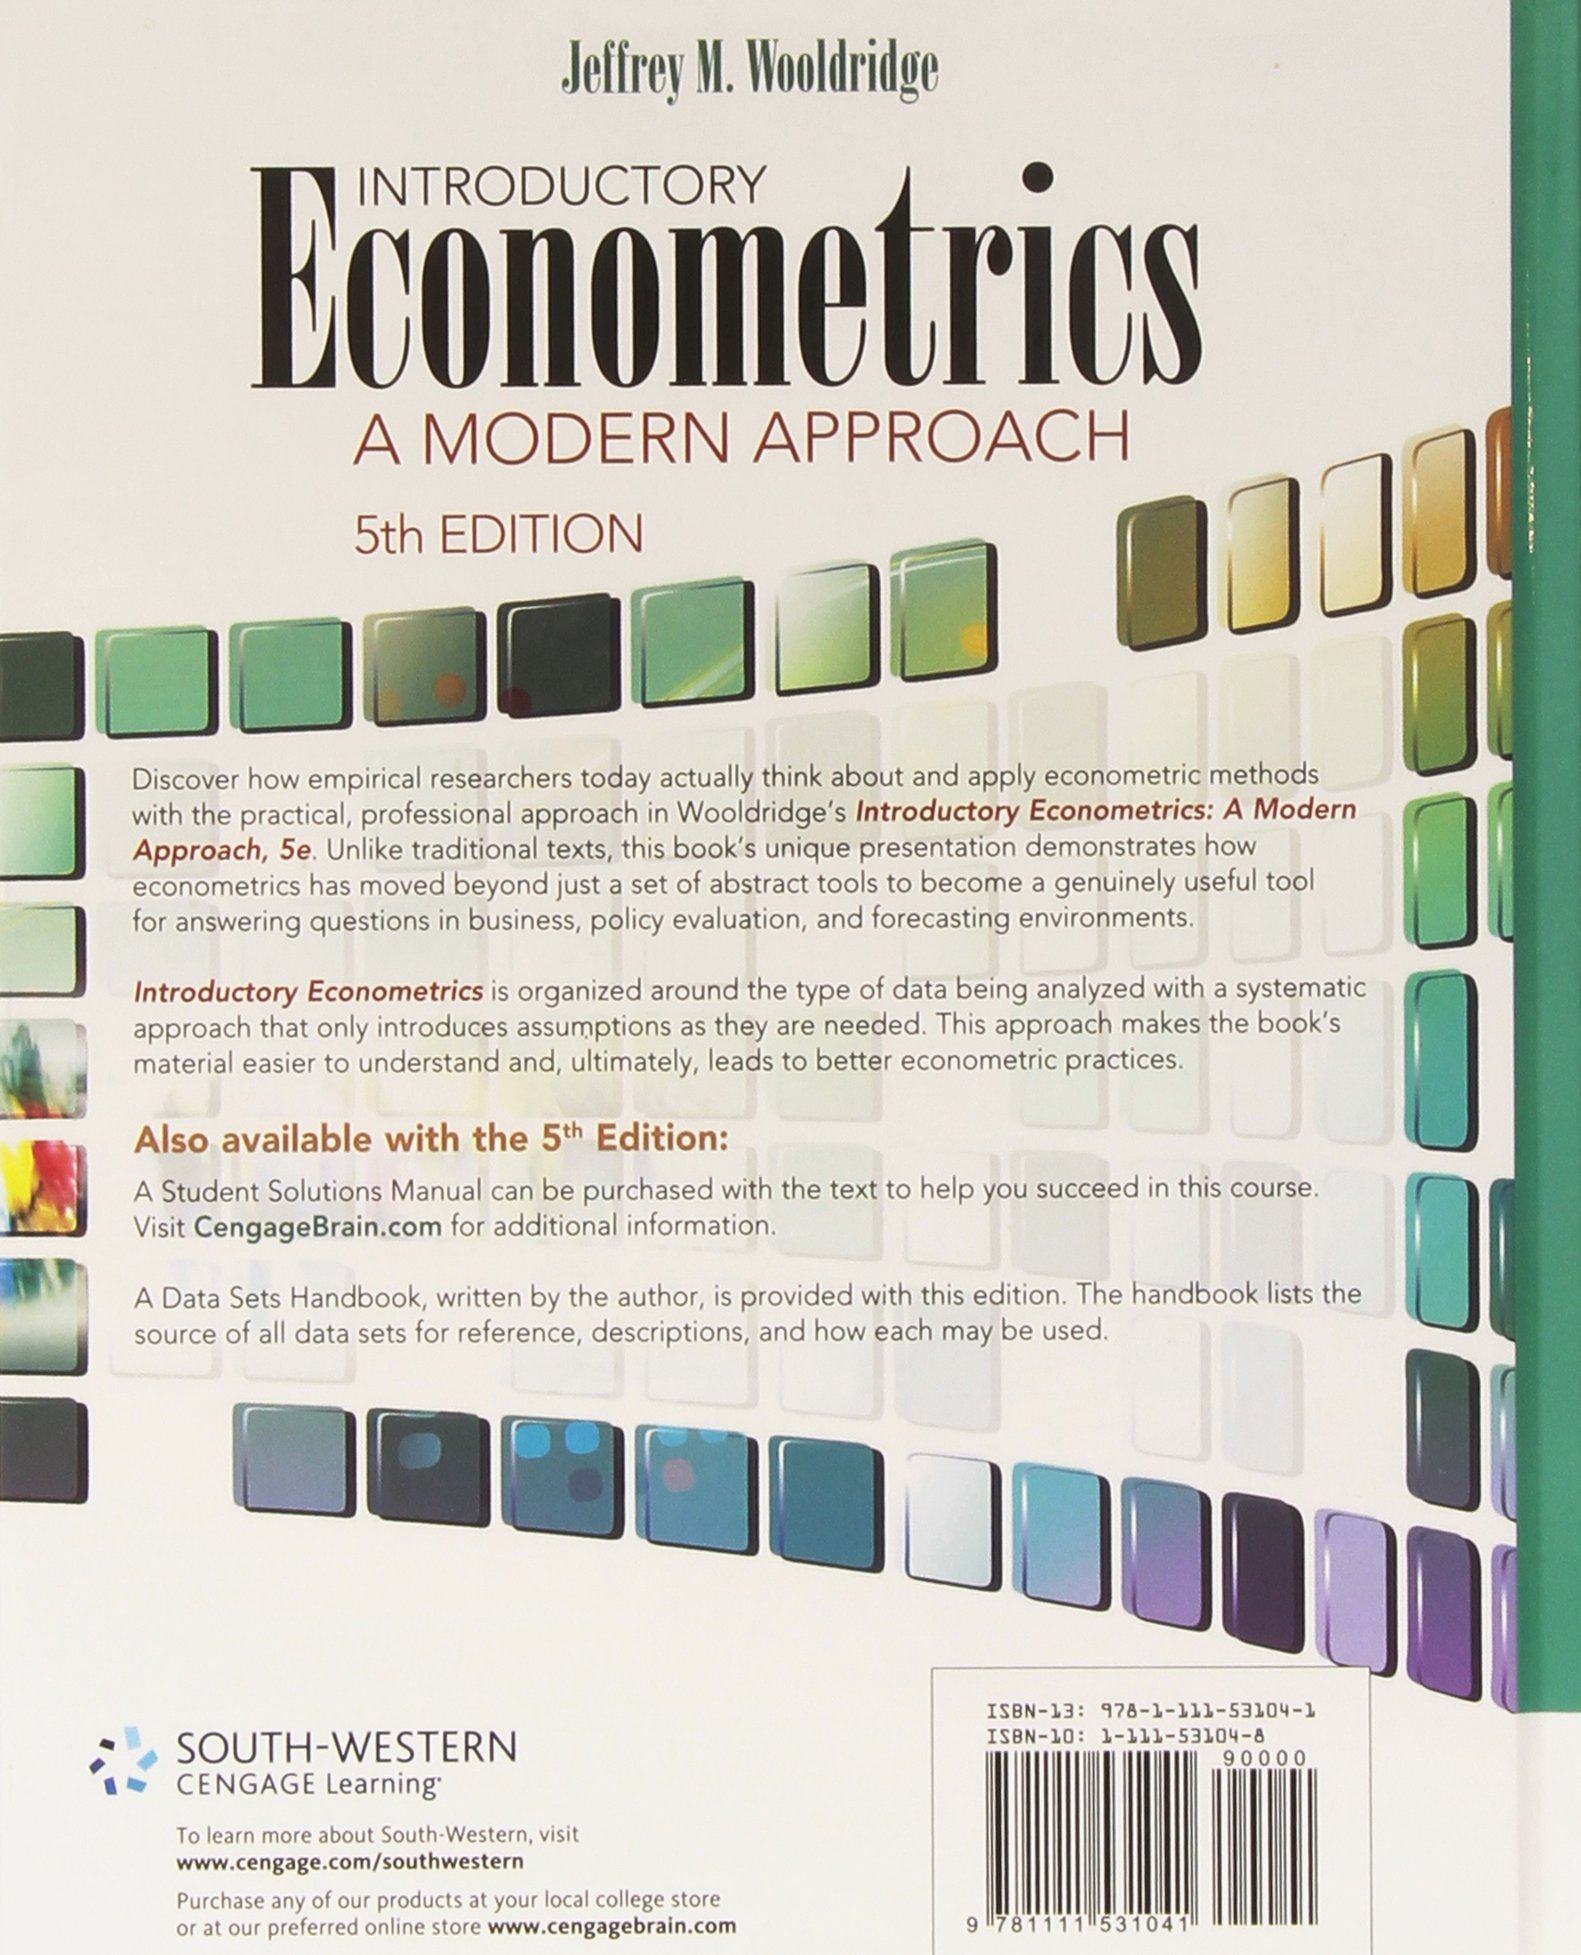 Introductory econometrics a modern approach jeffrey wooldridge introductory econometrics a modern approach jeffrey wooldridge 9781111531041 books amazon fandeluxe Gallery